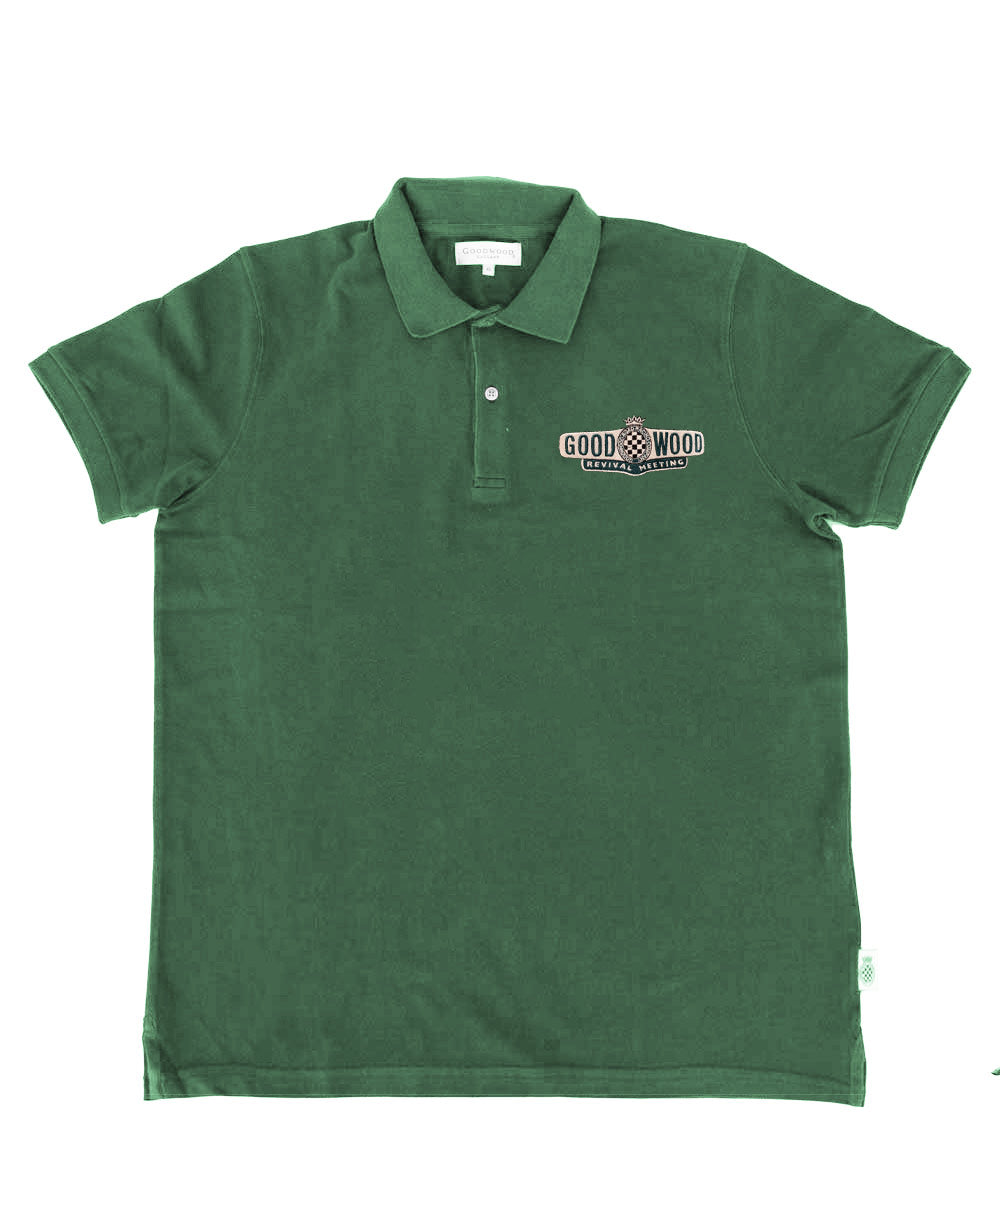 Goodwood Revival Green Polo Men's